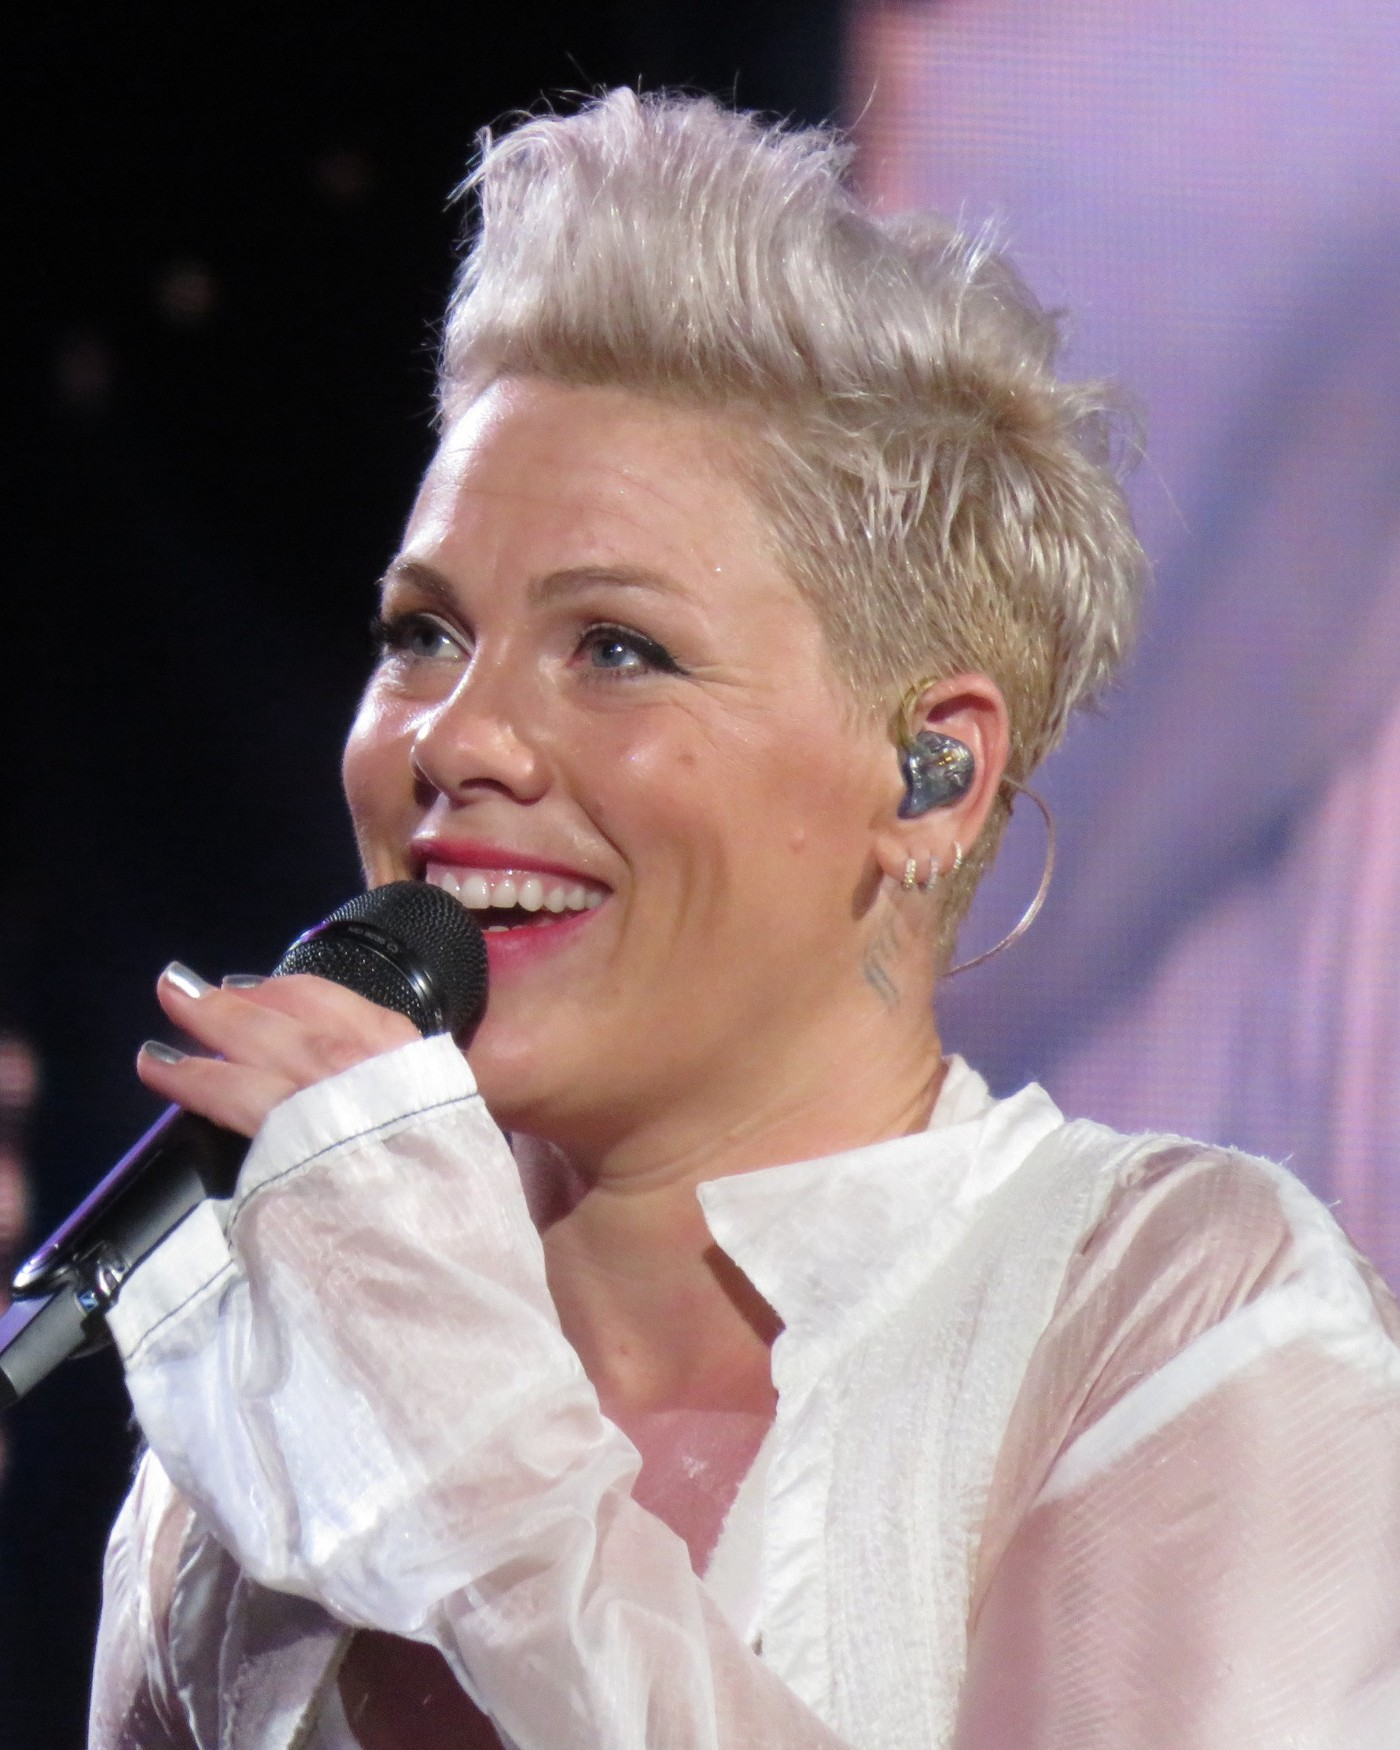 Close up shot of the musician Pink, performing with a microphone and short, blonde hair.